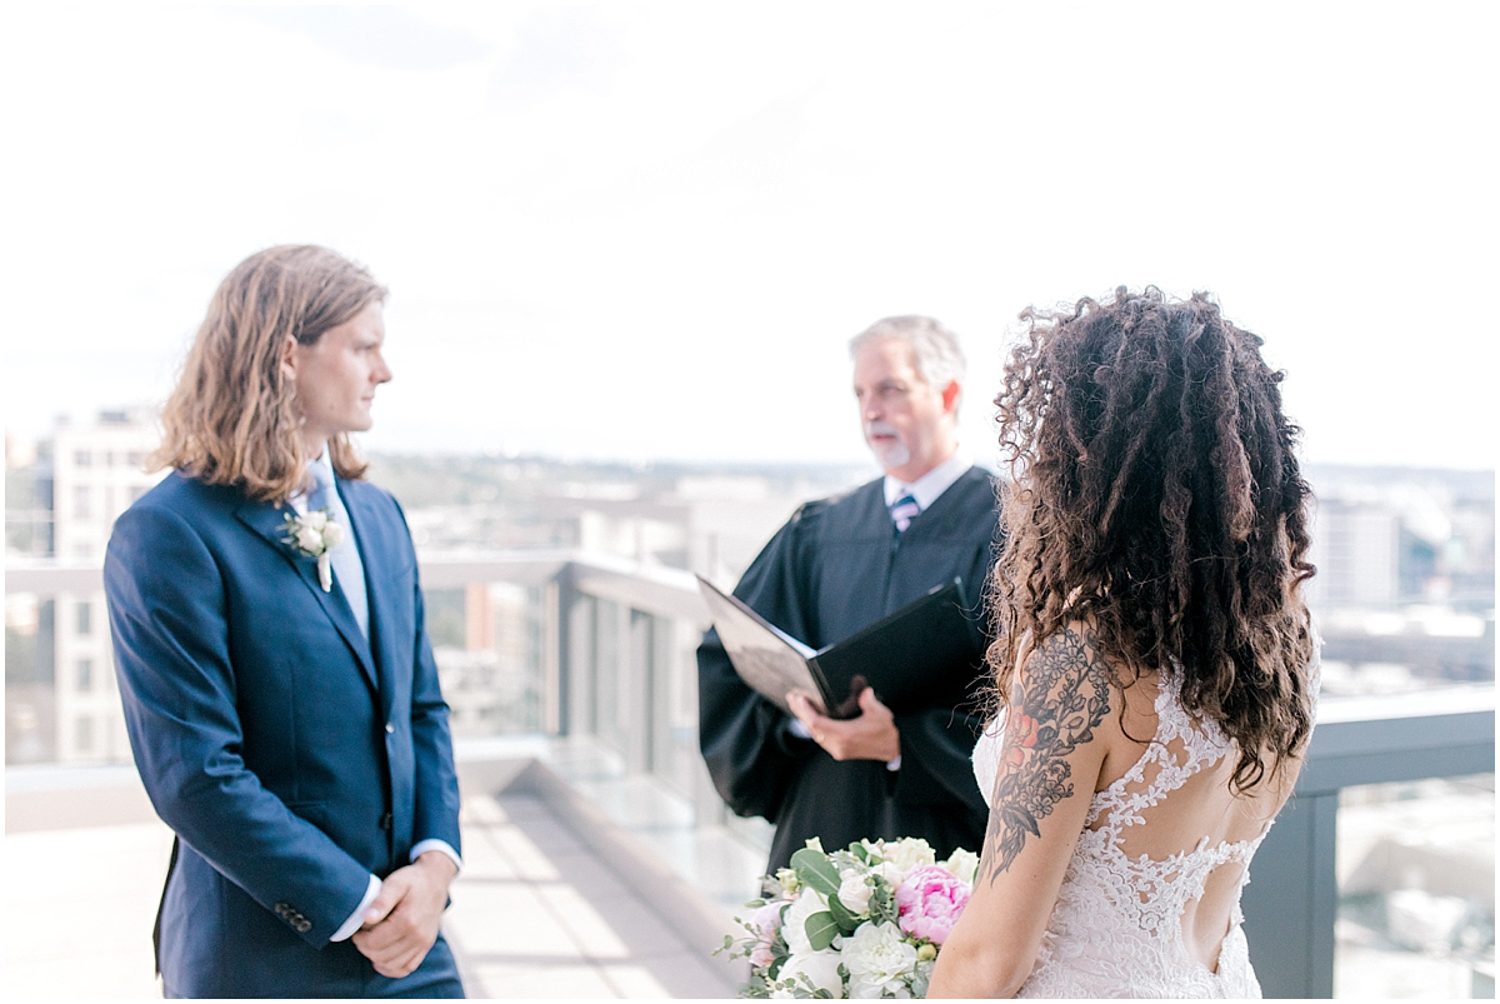 Seattle City Hall Courthouse Wedding Elopement | Seattle Wedding Photographer | Emma Rose Company | Downtown Seattle Wedding Inspiration | Pacific Northwest Elopement | Courthouse Elopement in the City-50.jpg